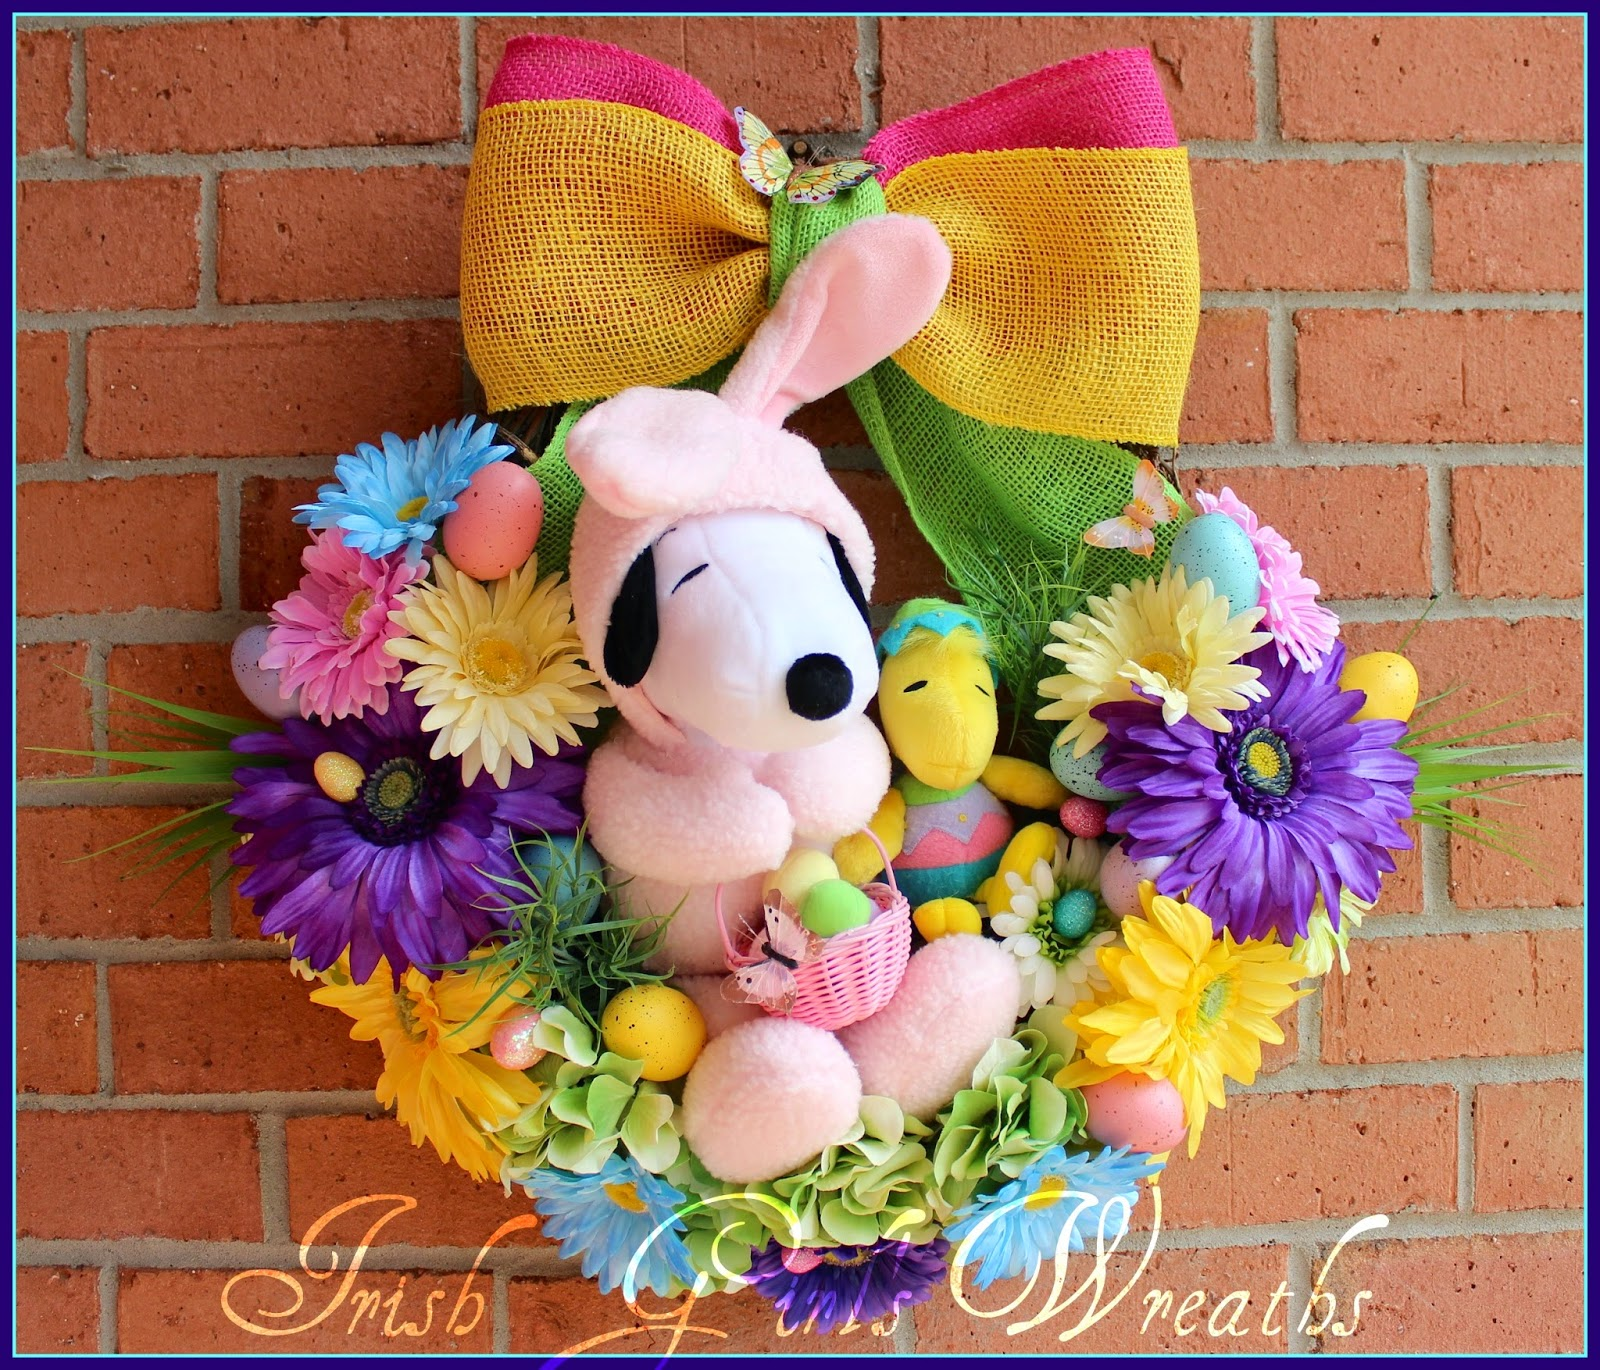 Pink and Yellow Easter Beagle Wreath, Snoopy, Woodstock, Peanuts